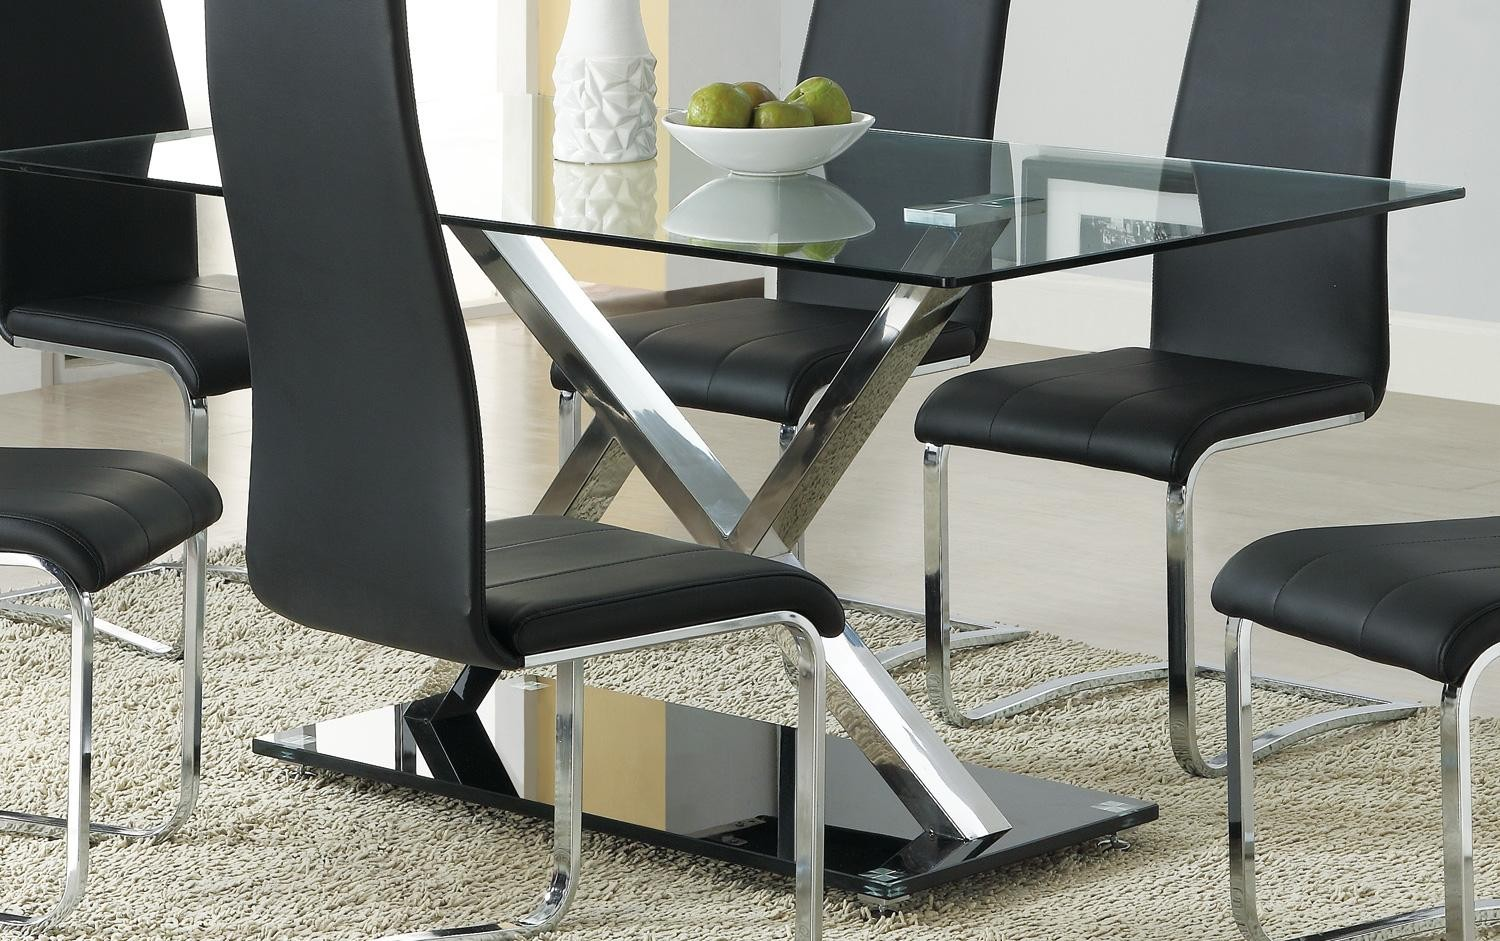 120 XY Chrome Dining Table from Coaster 102320 Coleman  : 102320 from colemanfurniture.com size 1500 x 941 jpeg 328kB